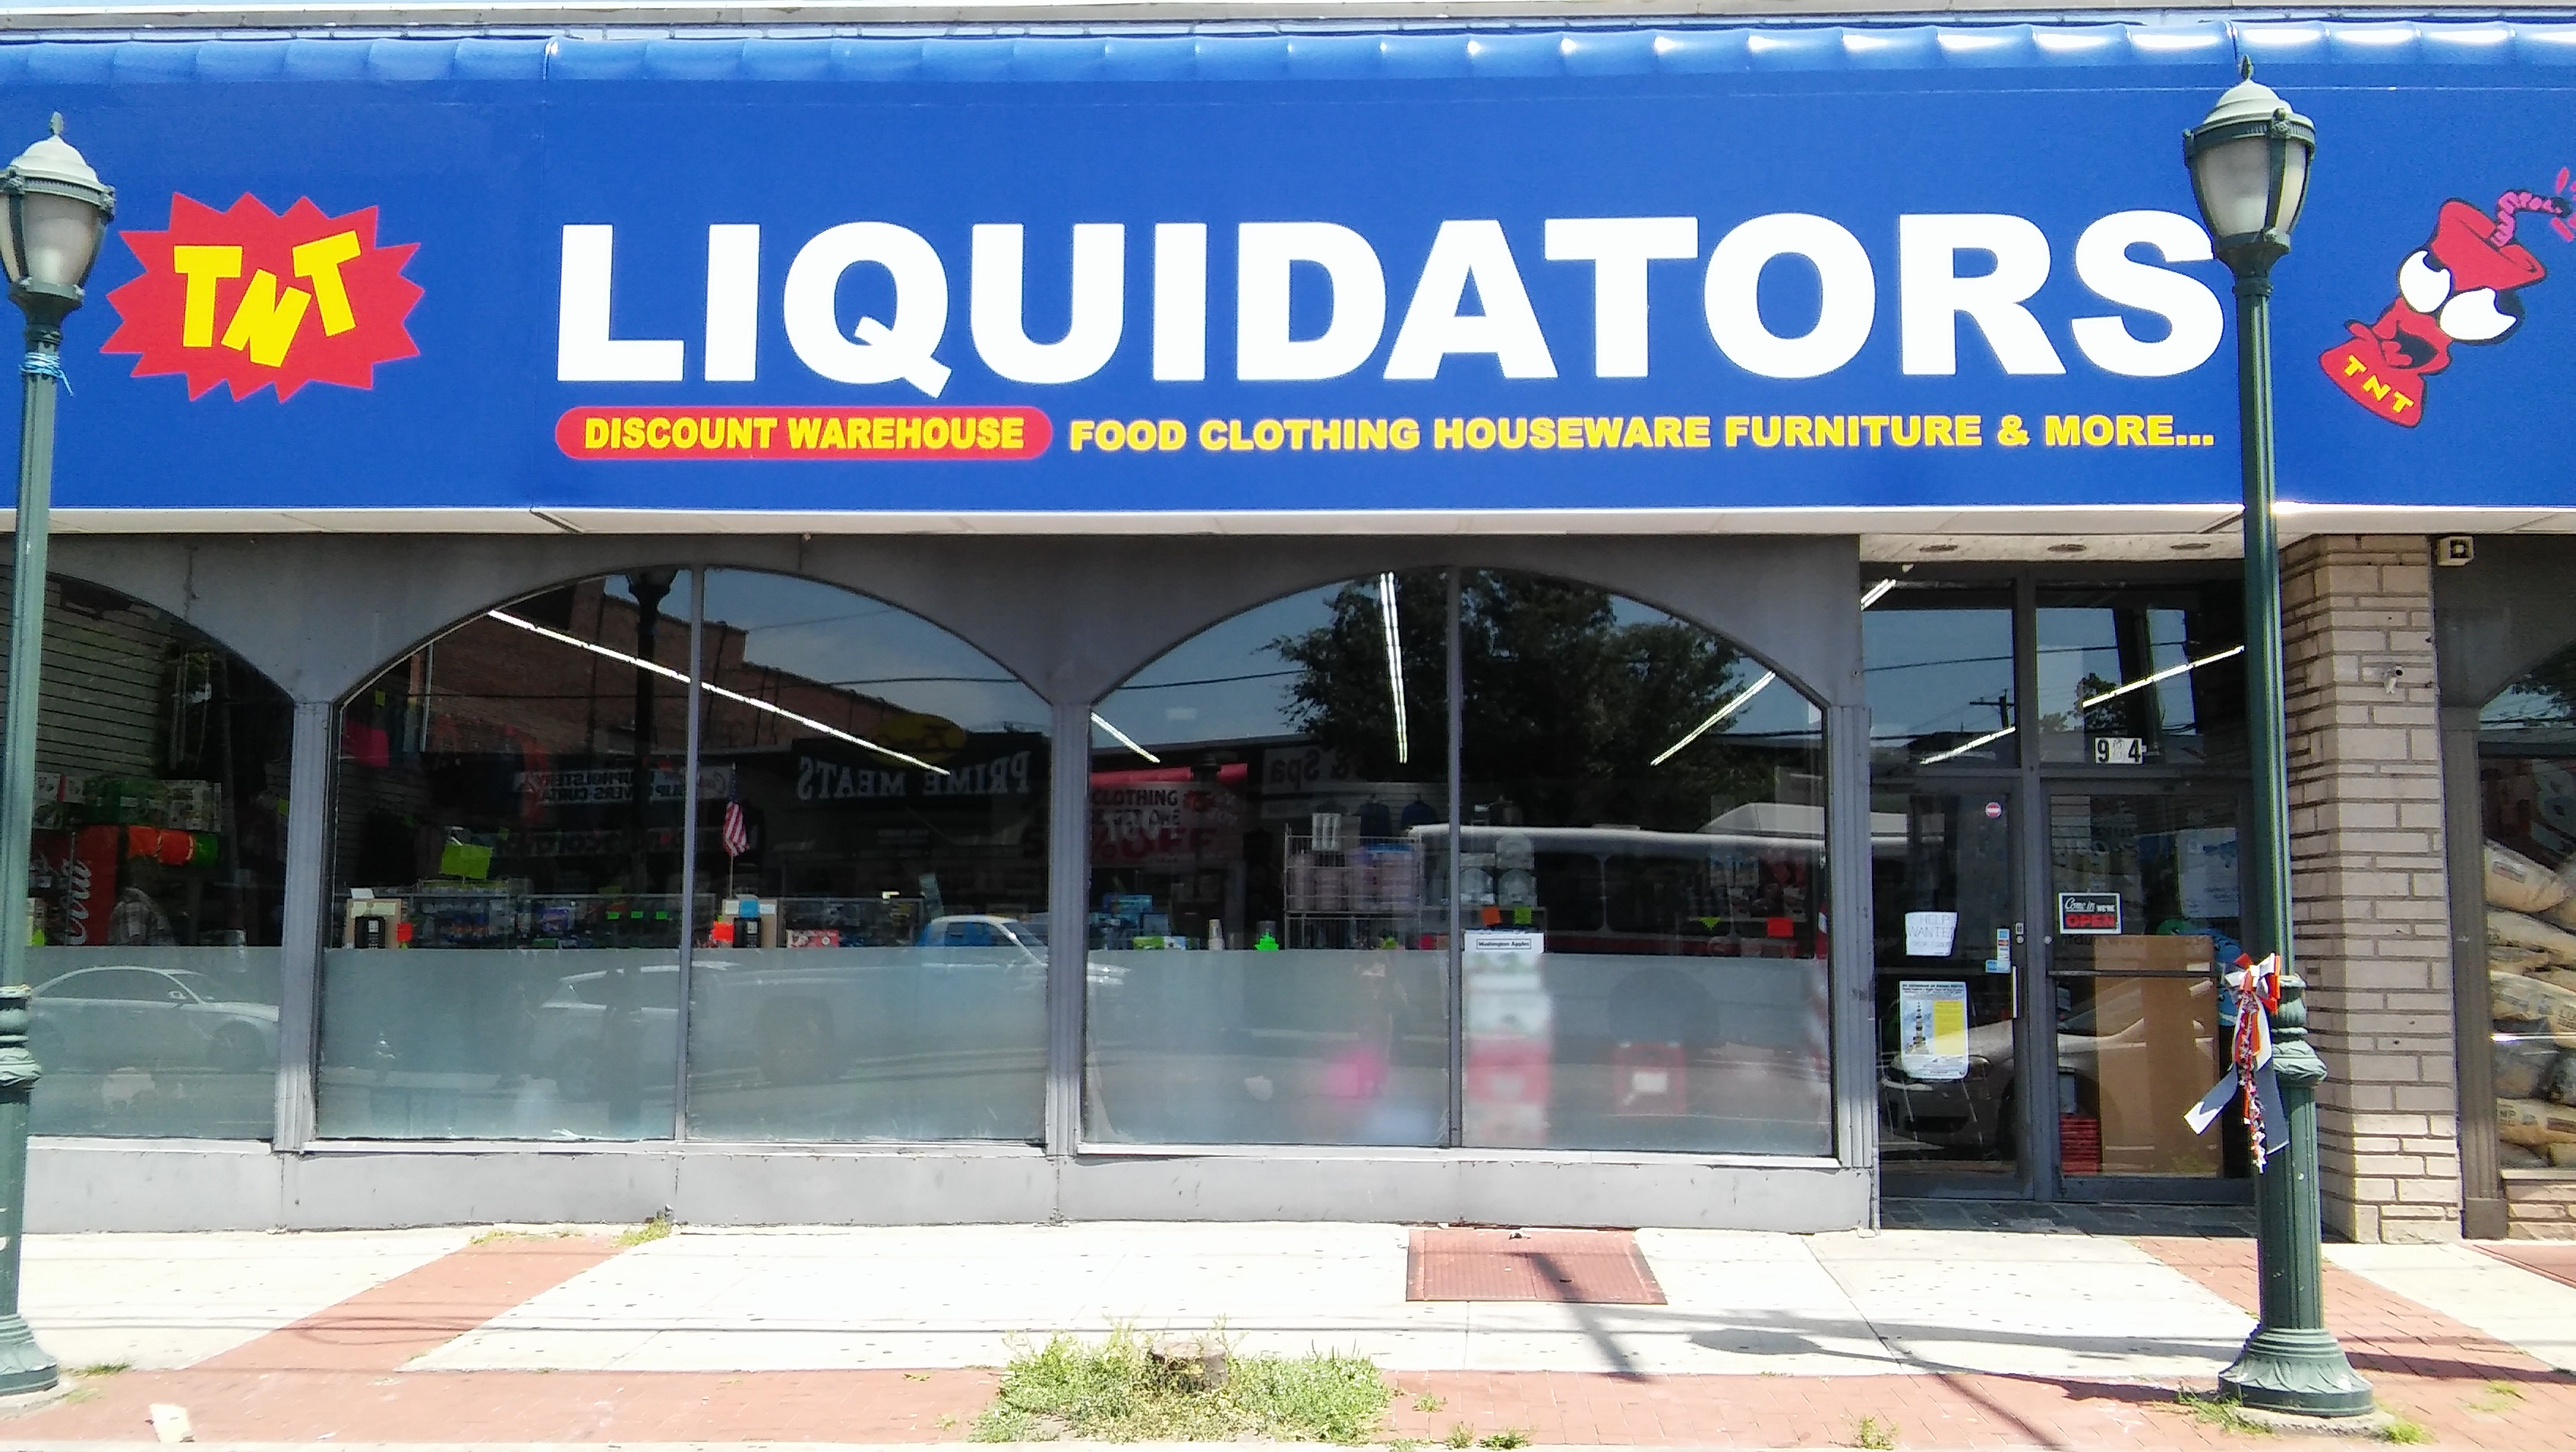 about us tnt liquidators discount clothing food housewares